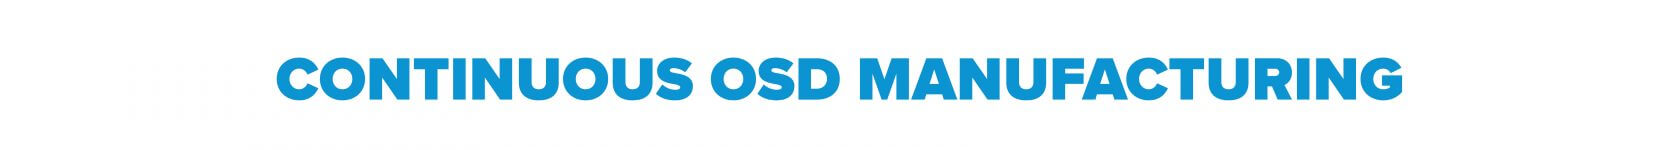 _3 Continuous OSD Manufacturing Header